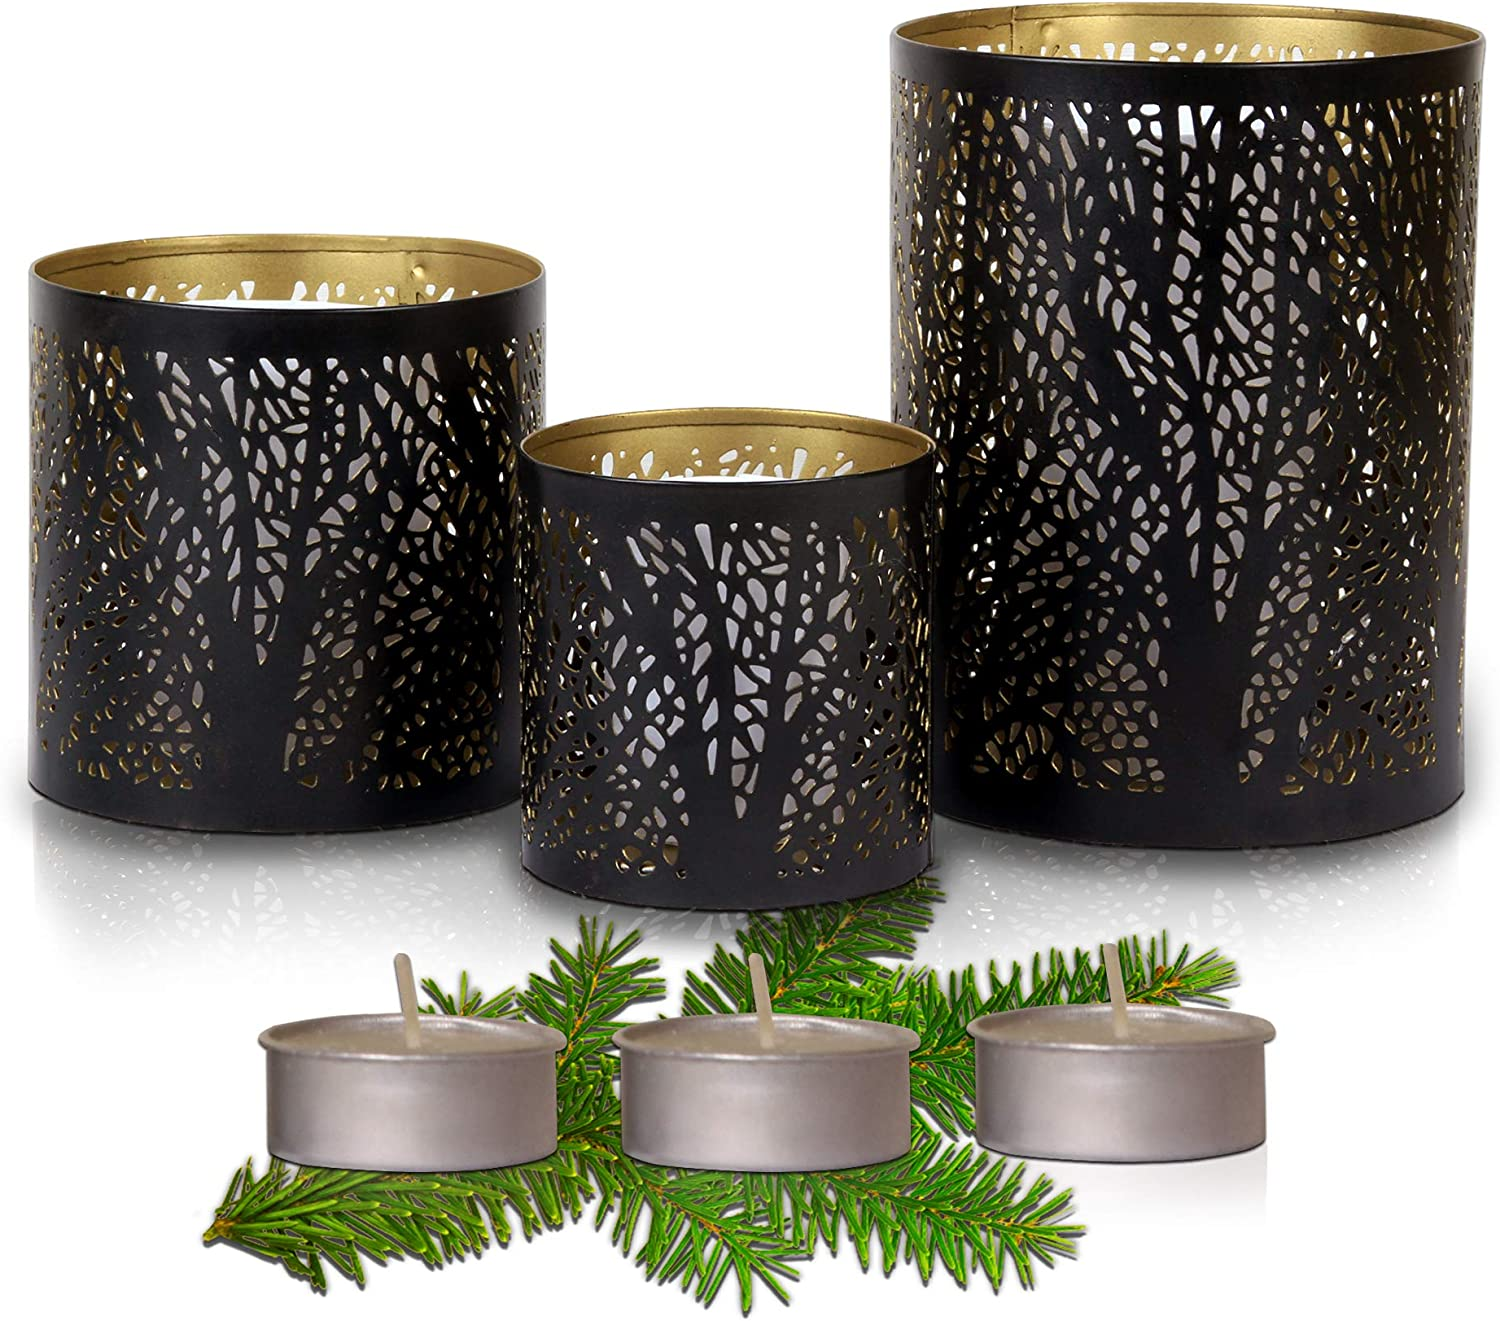 Hestia Black and Gold Candle Holder Set of 3 - Stunning Decorative Candle Centerpieces for Tables and Home Decor with a Unique Tree Sleeve Design | Rustic to Modern Style [Includes 3 Tea Candles]